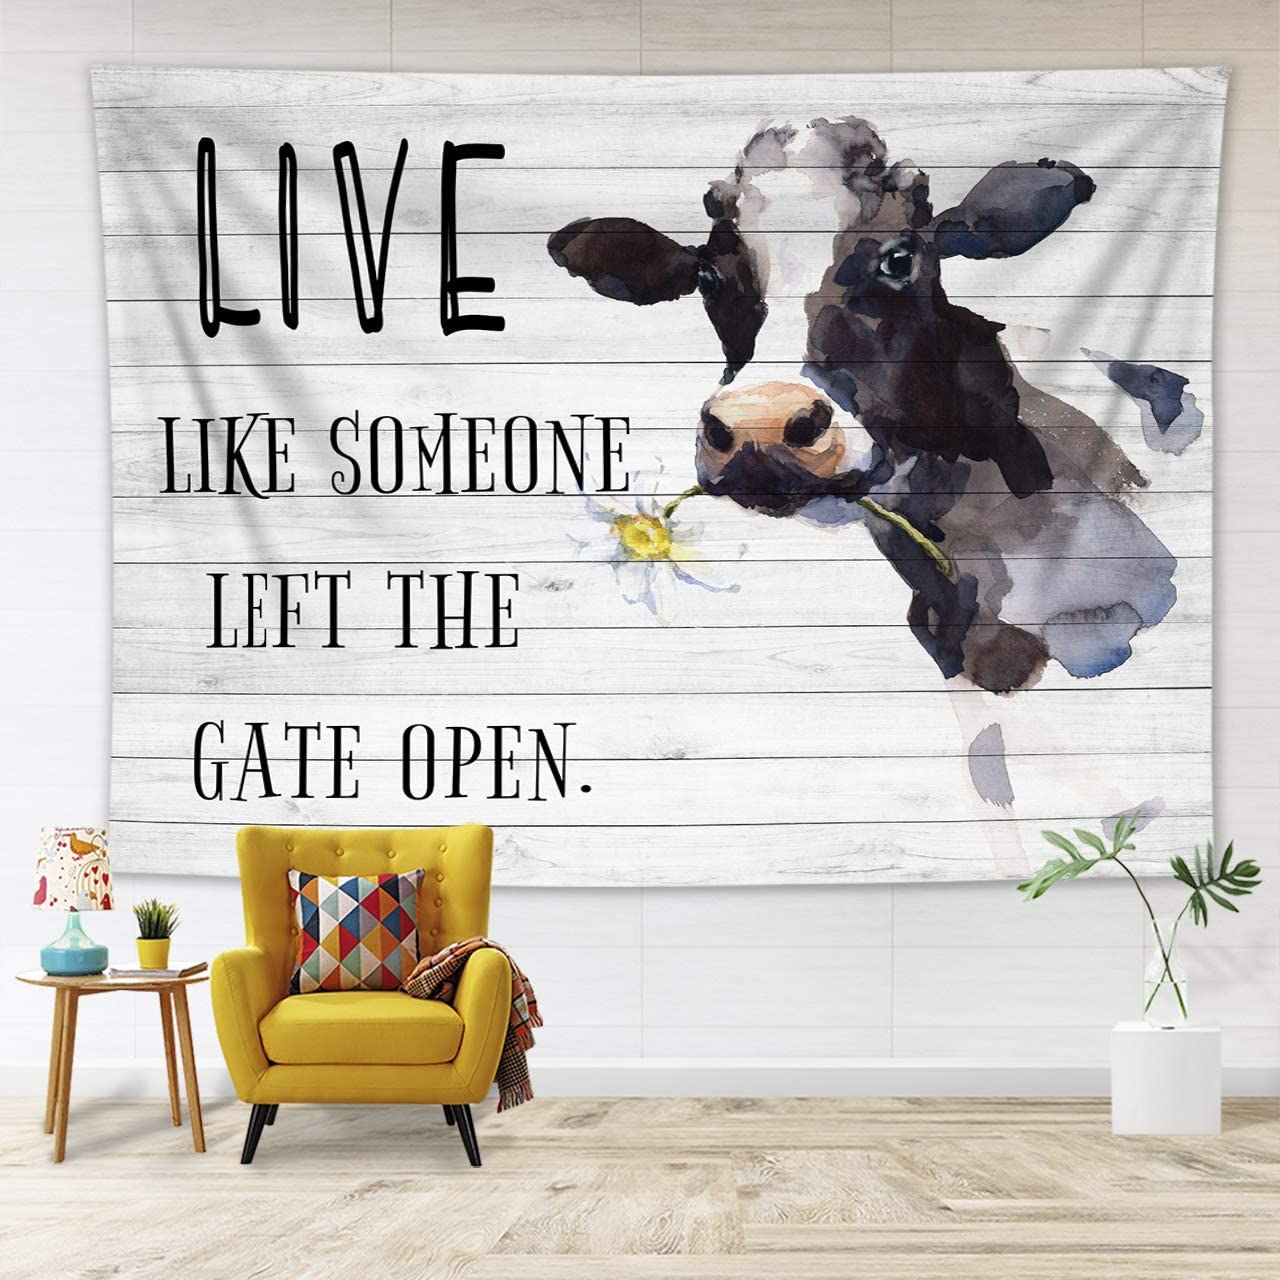 HVEST Farm Animal Tapestry Wall Hanging Decoration, Watercolor Cow with Daisy Flower and Funny Words on Rustic Wood Wall Tapestry for Dorm Living Room Bedroom, 92.5×70.9 inch Wall Blanket Beach Towels